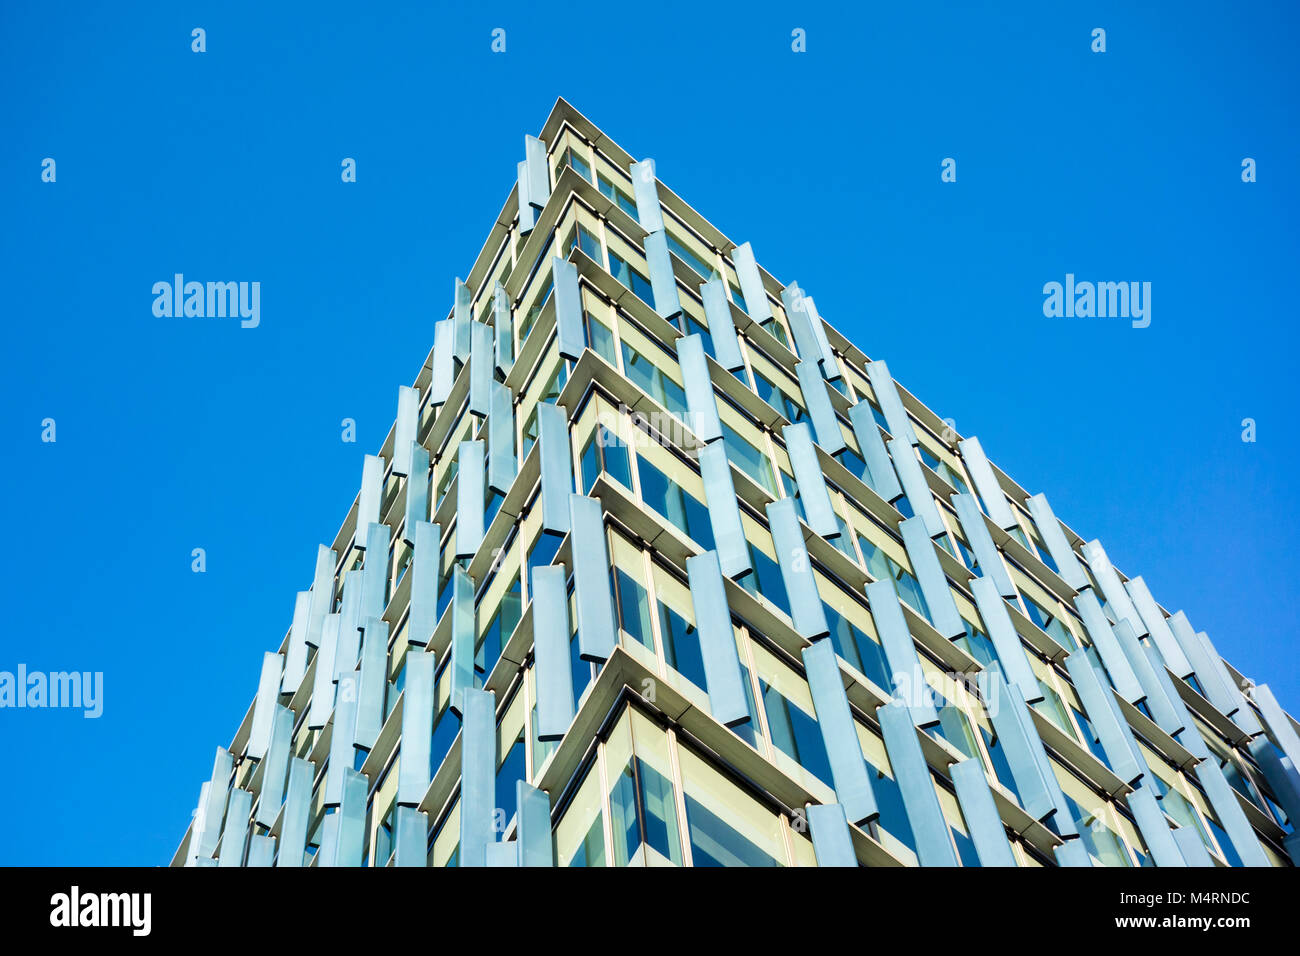 Blue Fin Building by Allies and Morrison, Bankside, 110 Southwark Street, London, UK - Stock Image